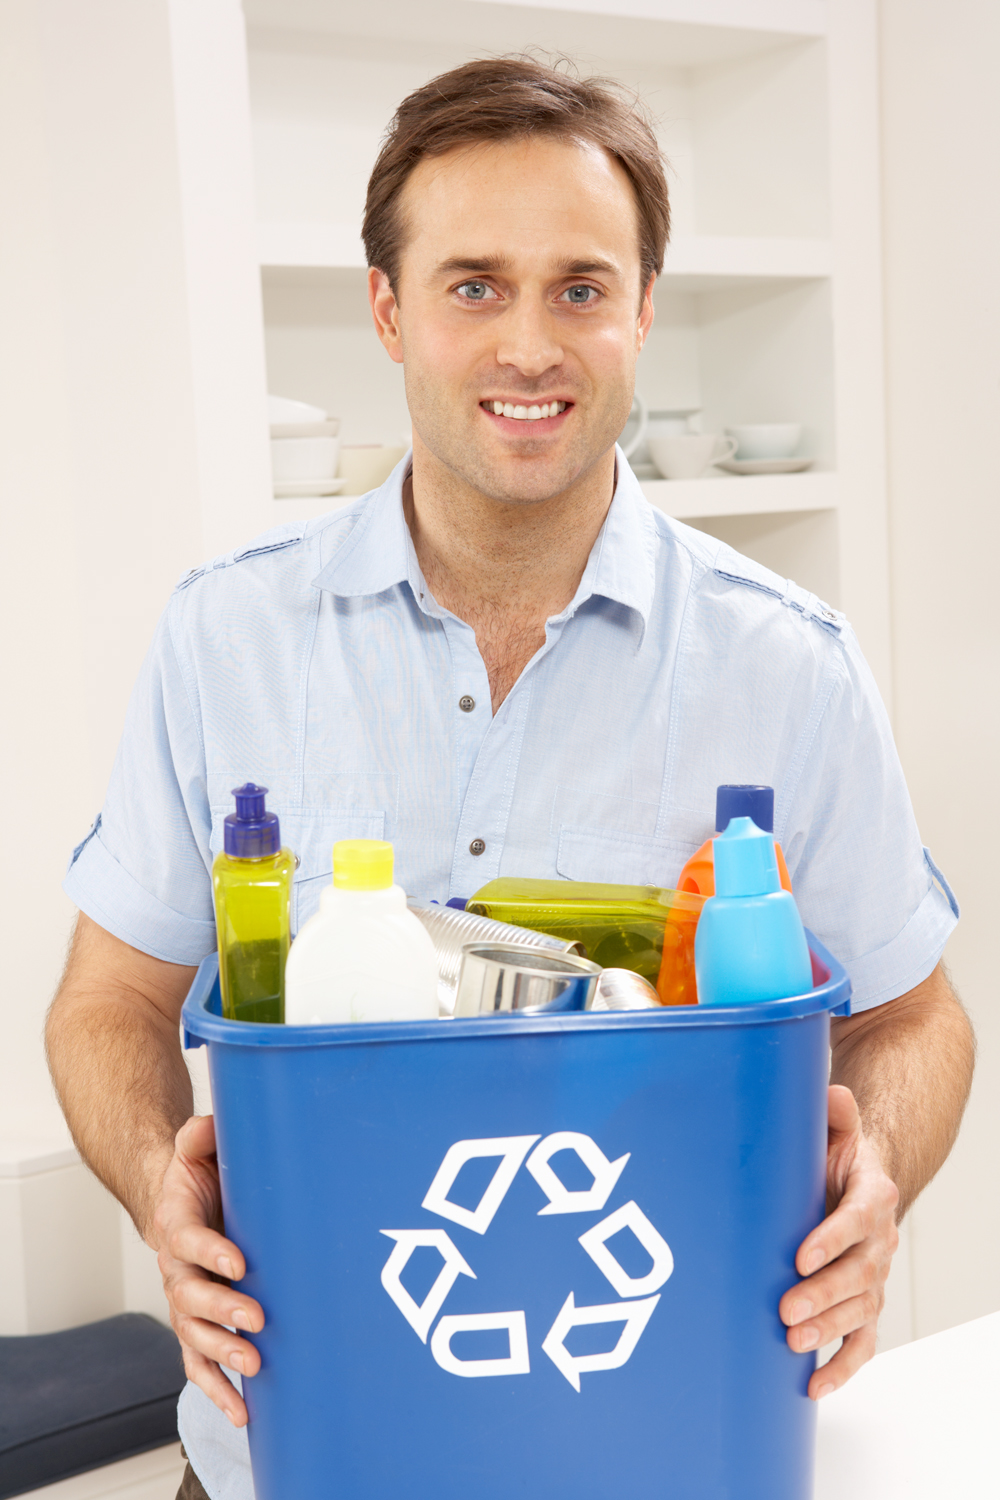 Recycling at the curb begins with collecting recyclables inside the home during the week. A small deskside recycling bin in the kitchen is a great way to remember to recycle.